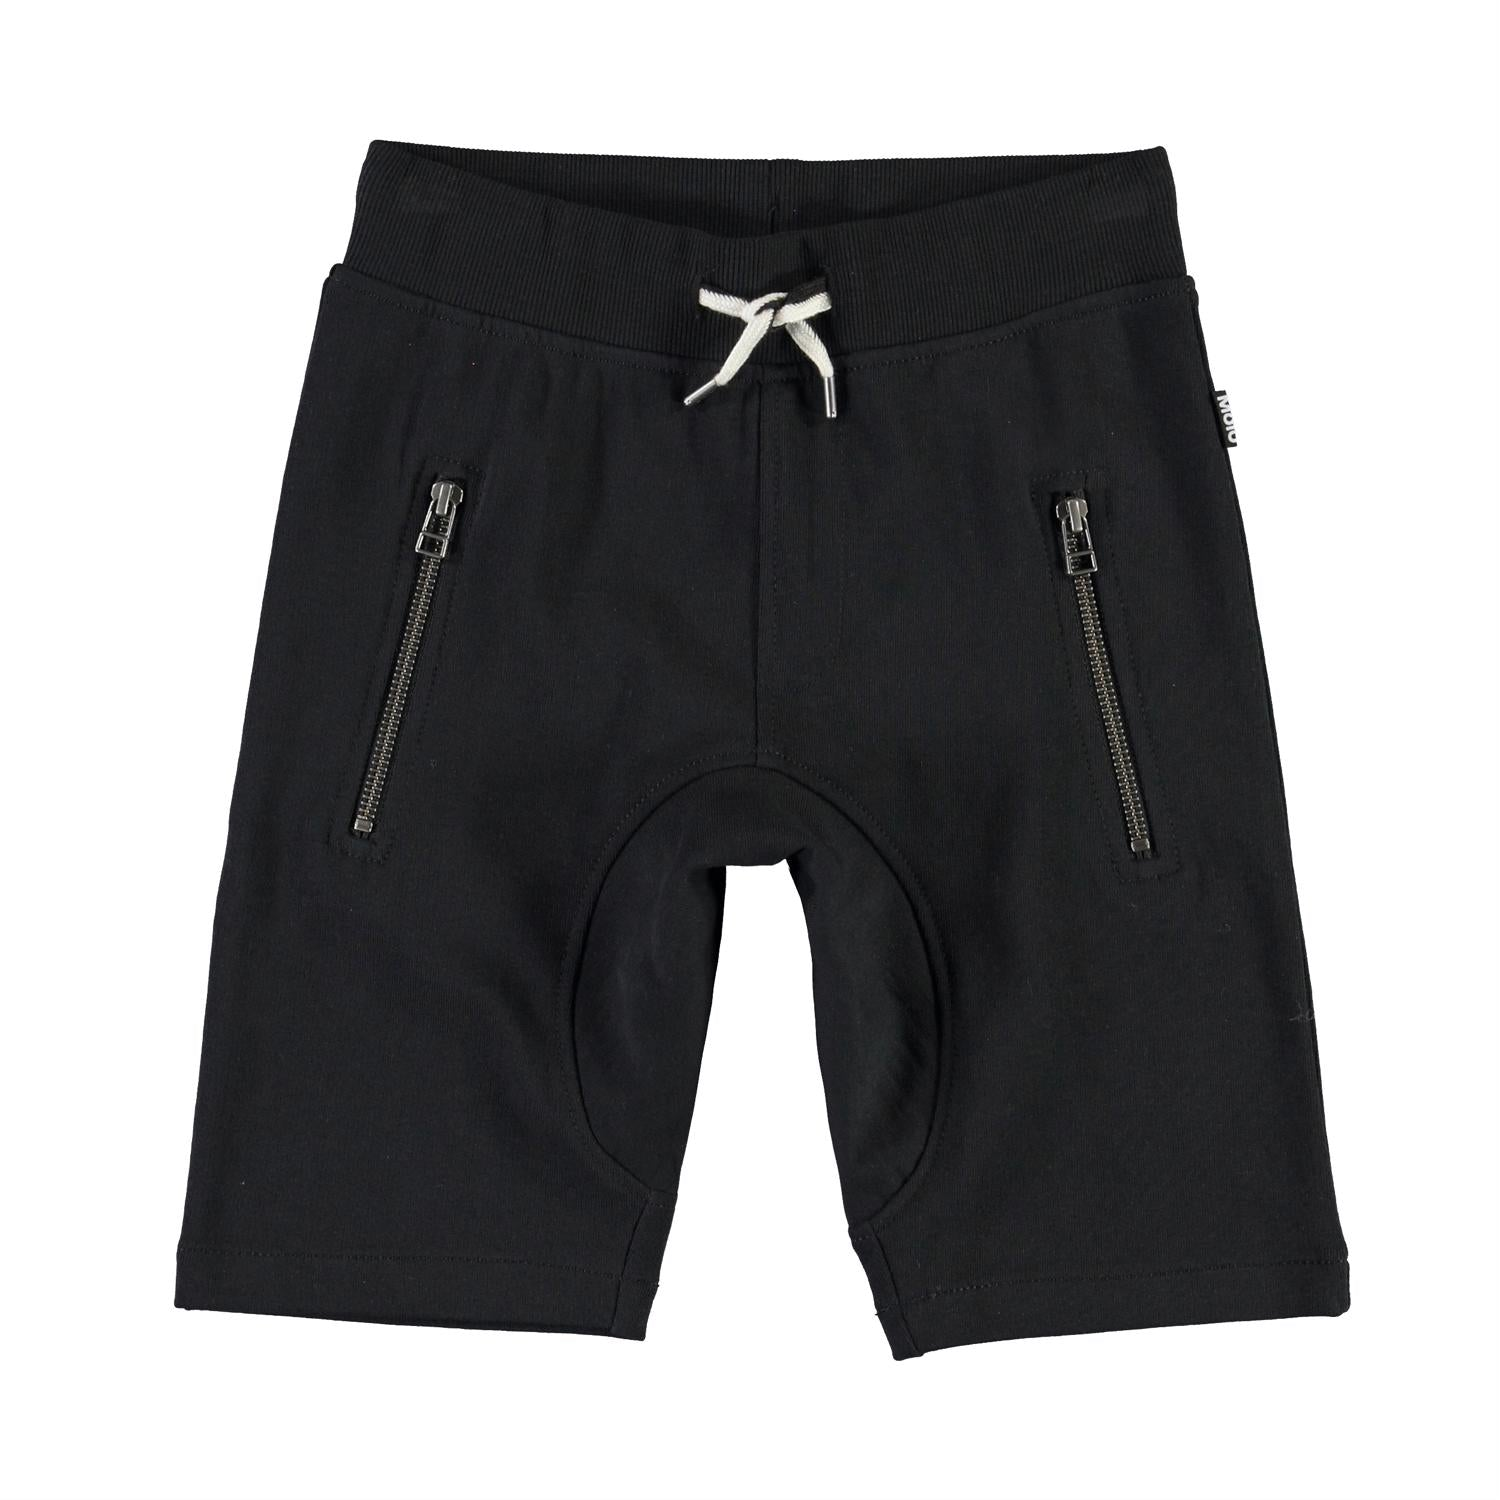 MOLO - Shorts Sweat Ashton Black